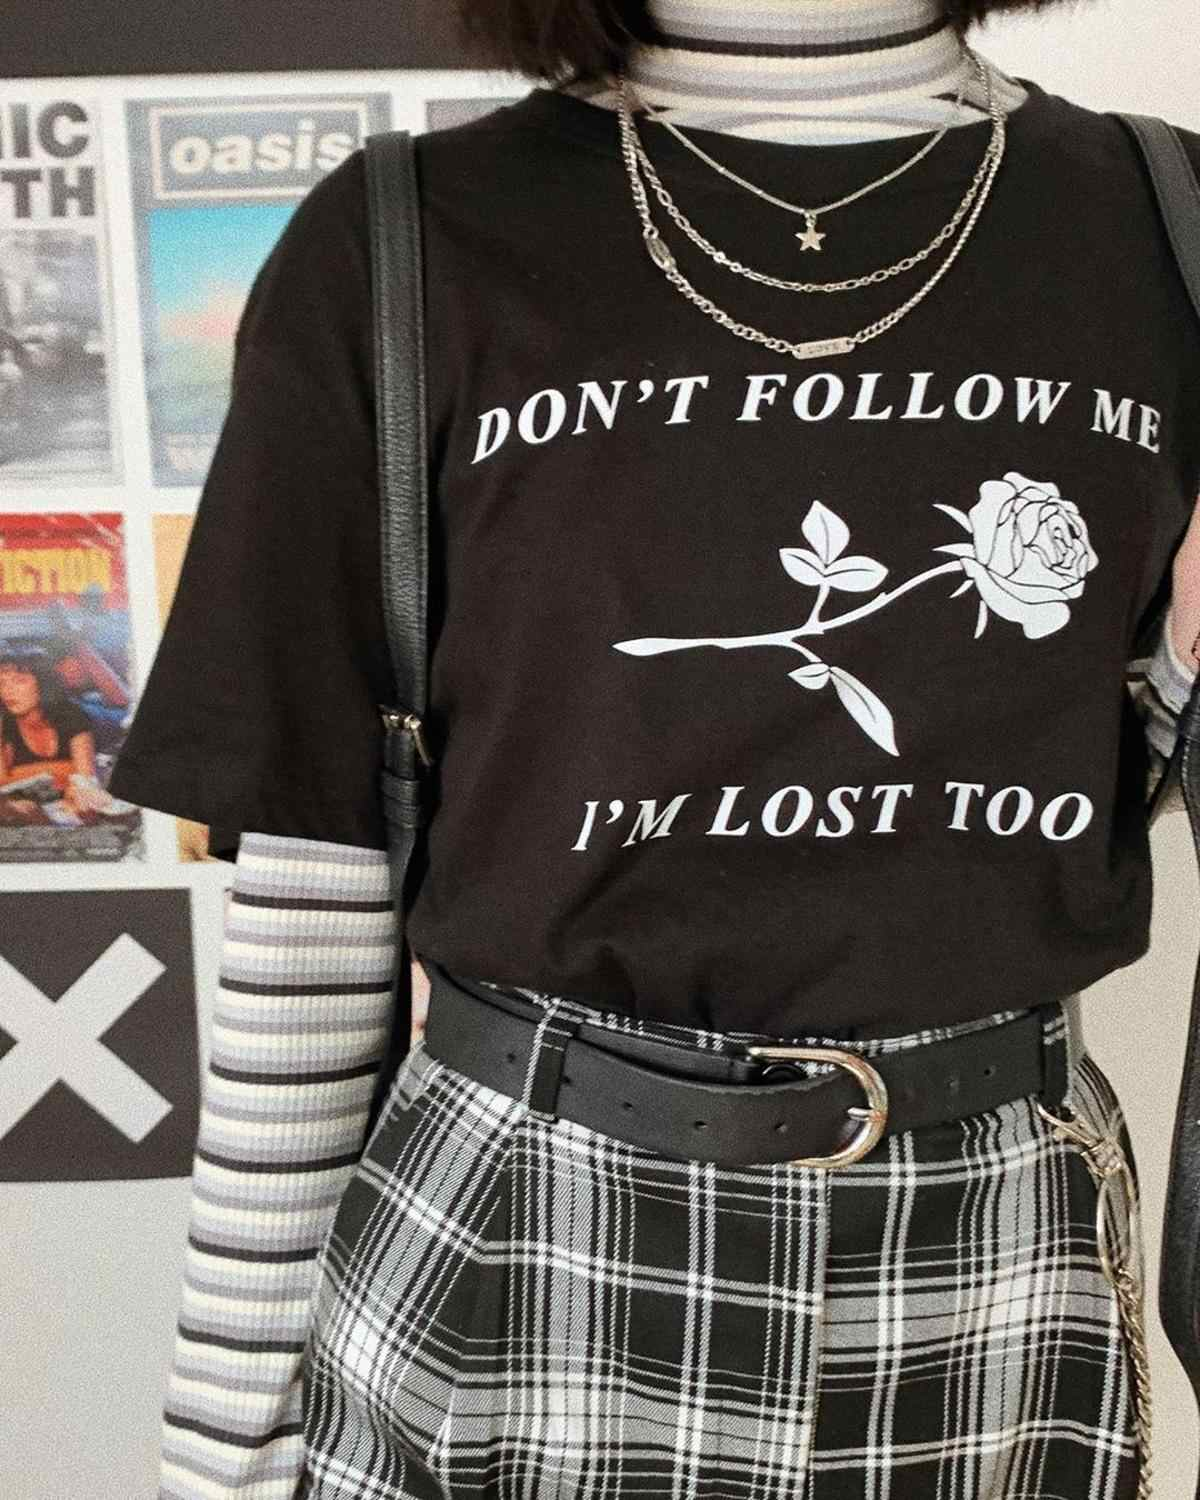 2020 New Harajuku aesthetics Tshirt Rose Print Short Sleeve Tops & Tees Fashion Casual Couple T Shirt 90'S Clothing T-Shirt